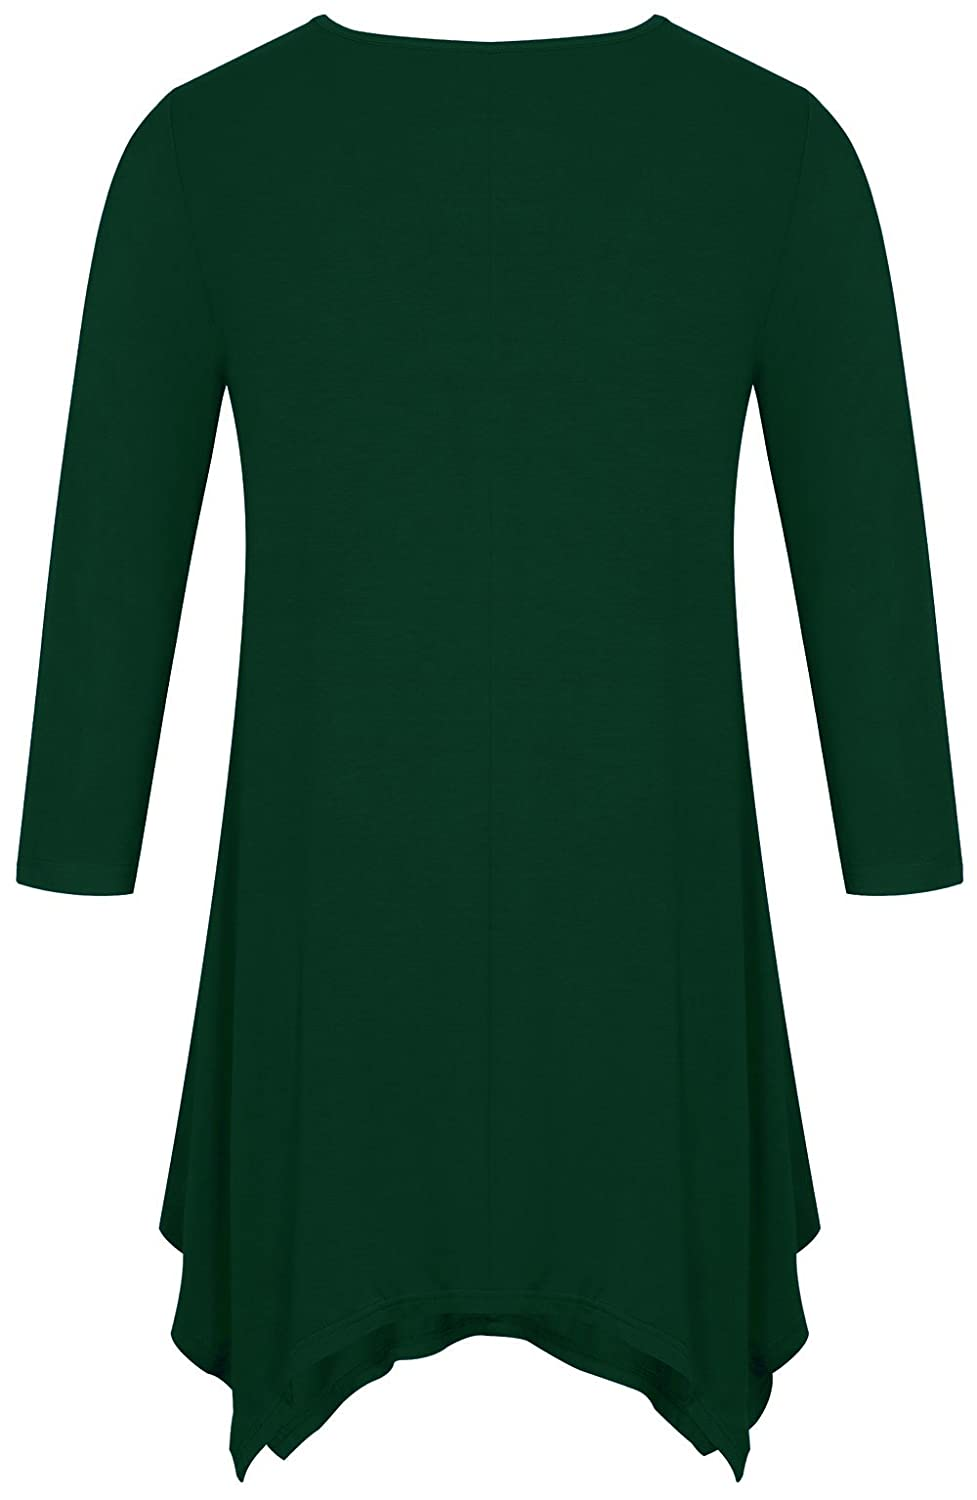 0a9aaa8c455523 Fanfly Women s 3 4 Sleeve Swing Tunic Top Loose Fit Flowy Shirt at Amazon  Women s Clothing store